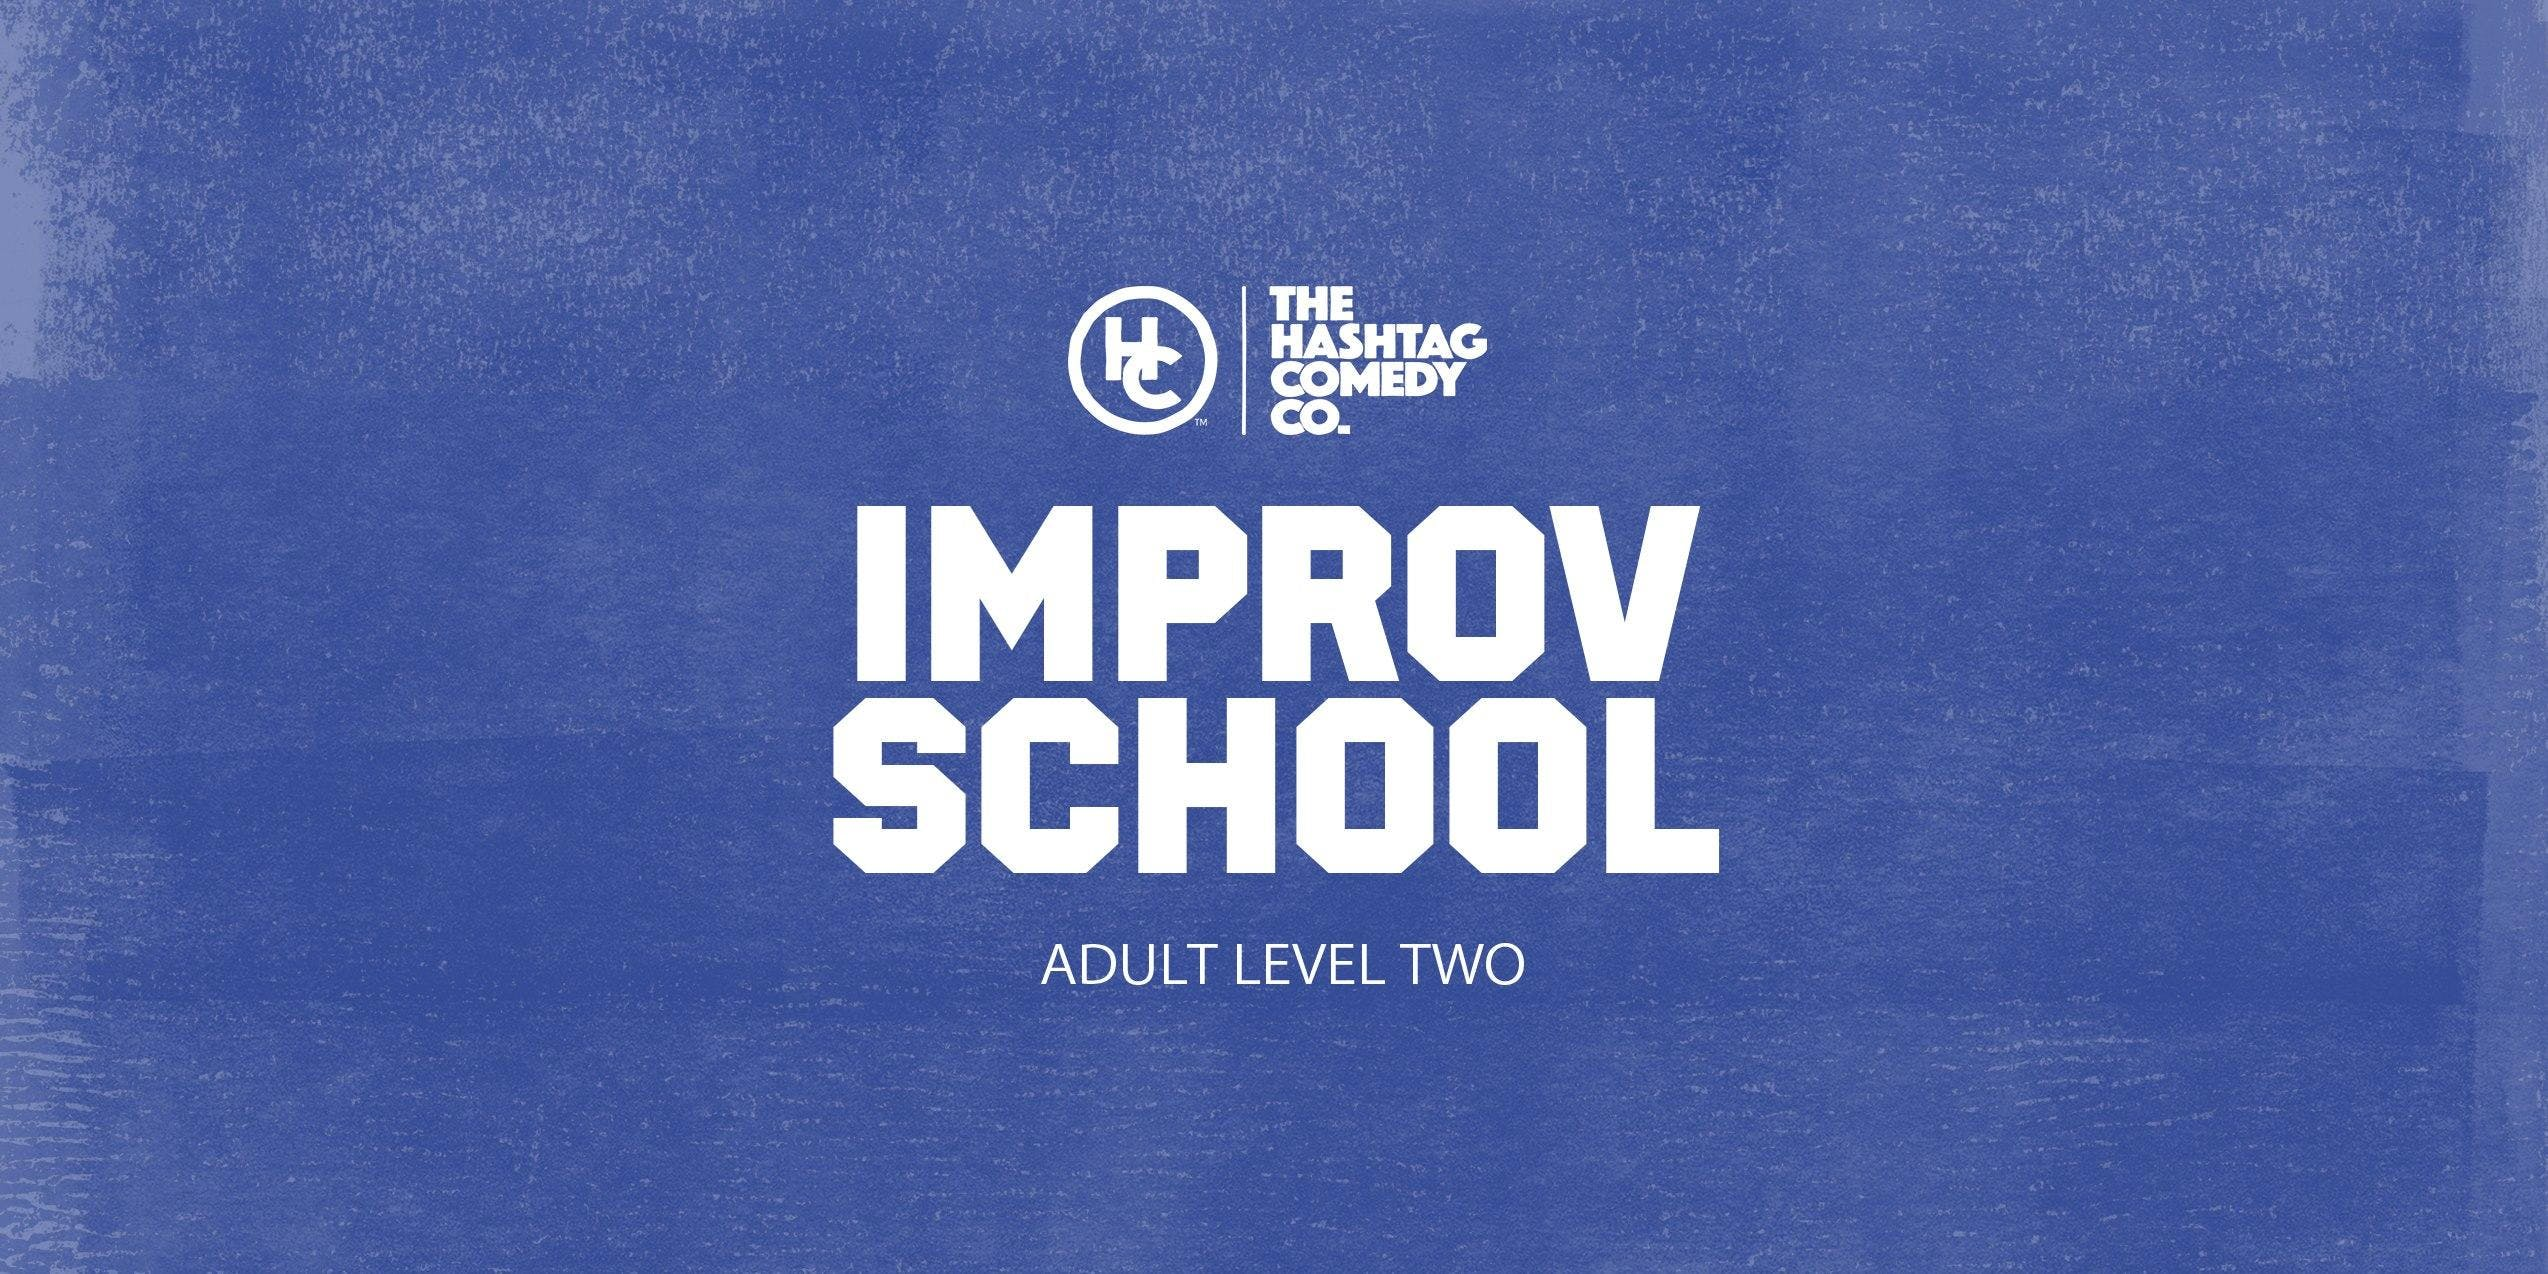 Adult Improv Comedy Classes, Level Two (FALL 2019, SIX WEEK COURSE)